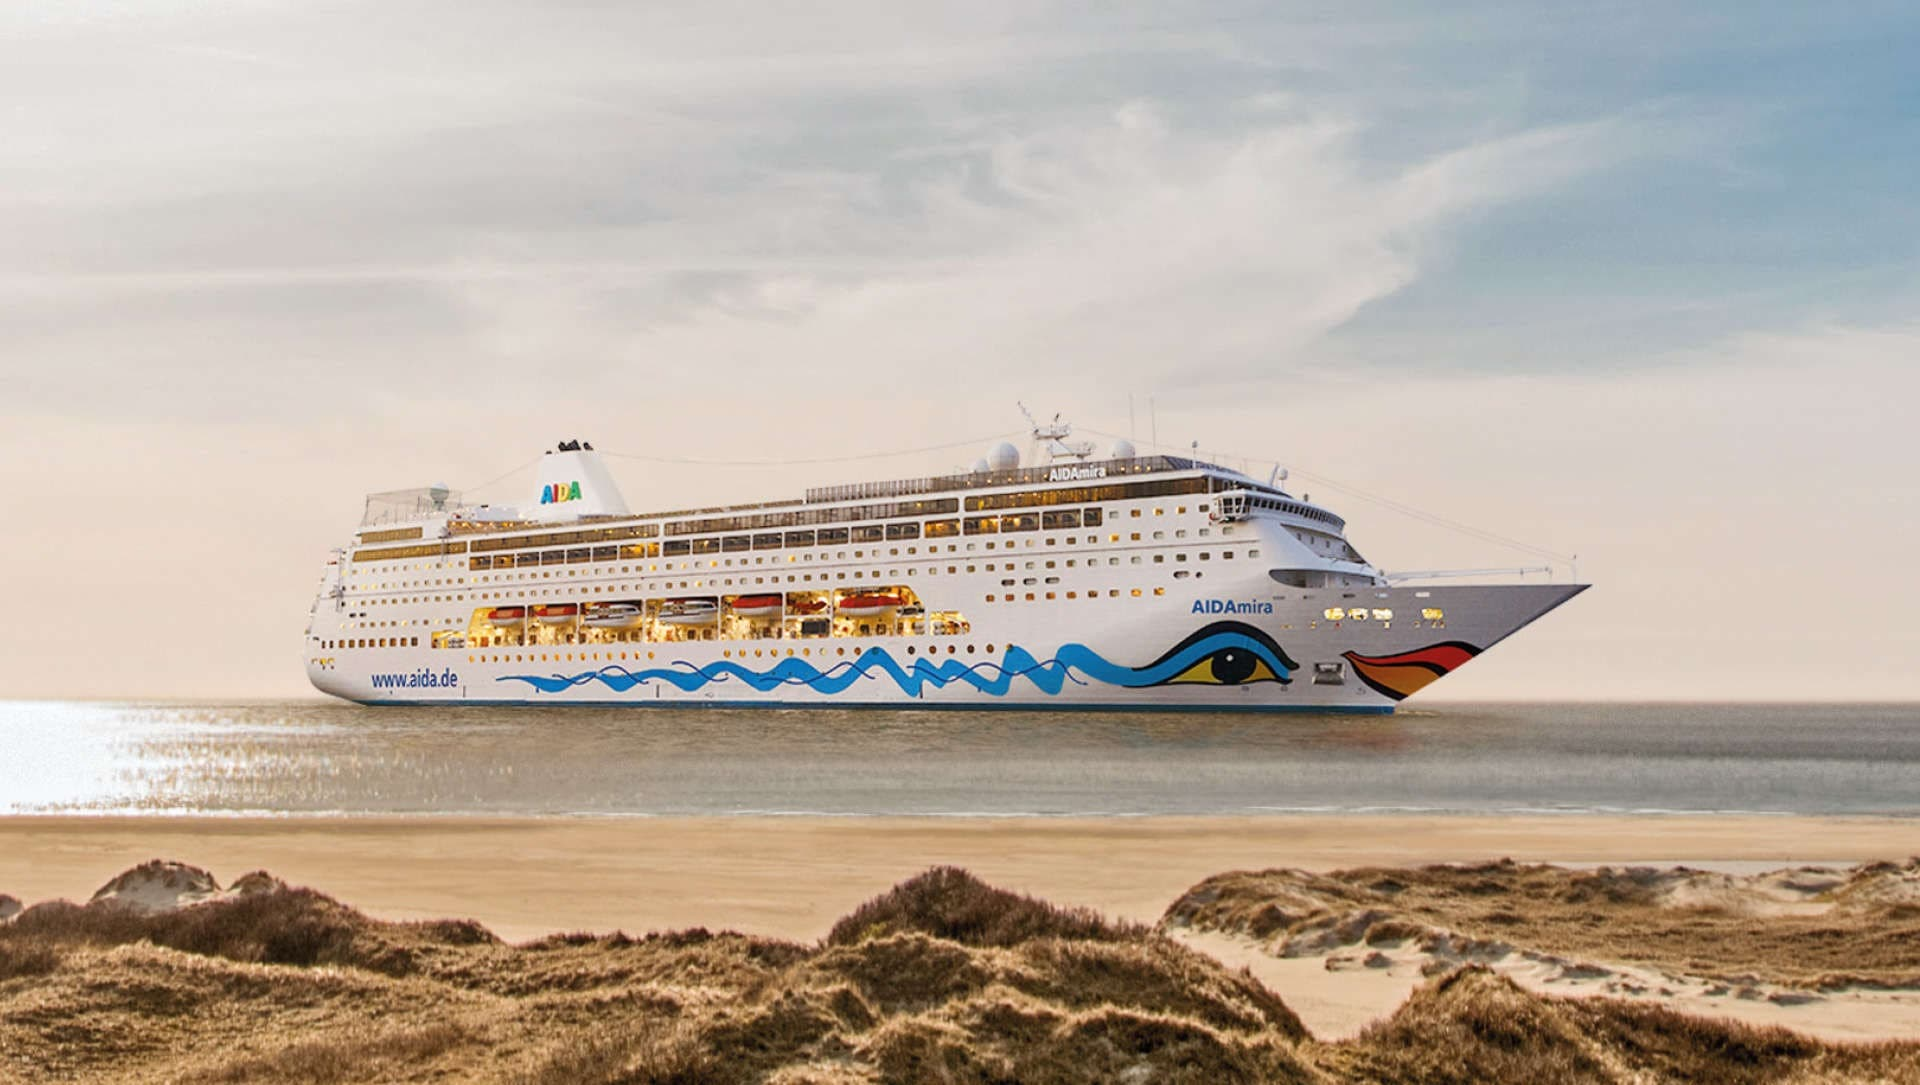 COVID-19 Update: 1,700 Quarantined on Cruise Liner in Cape